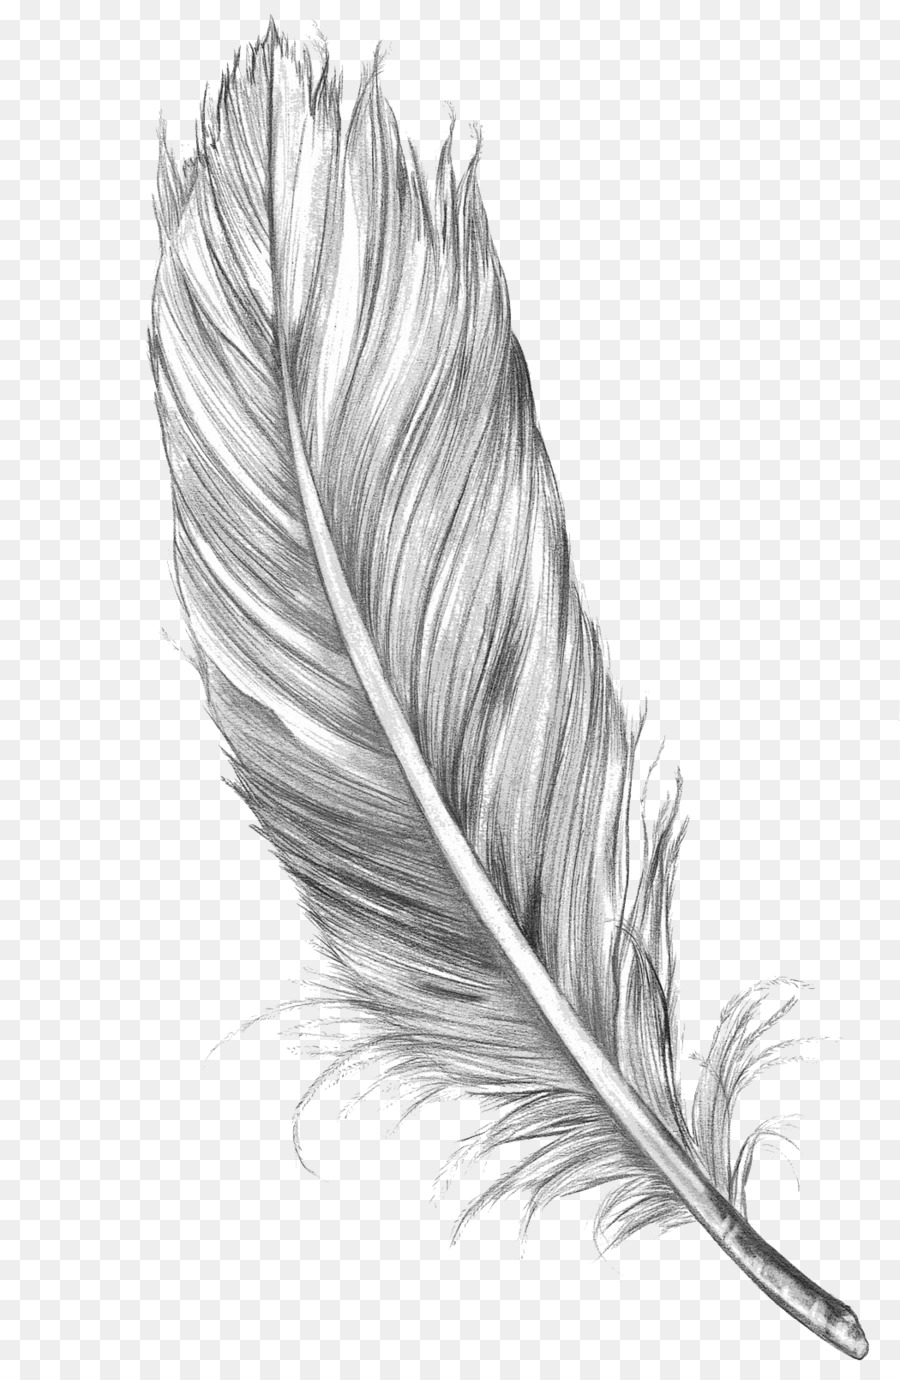 Drawing Feather Bird Art Sketch - Feather Png Download - 1050*1600 - Free Transparent Line Art ...